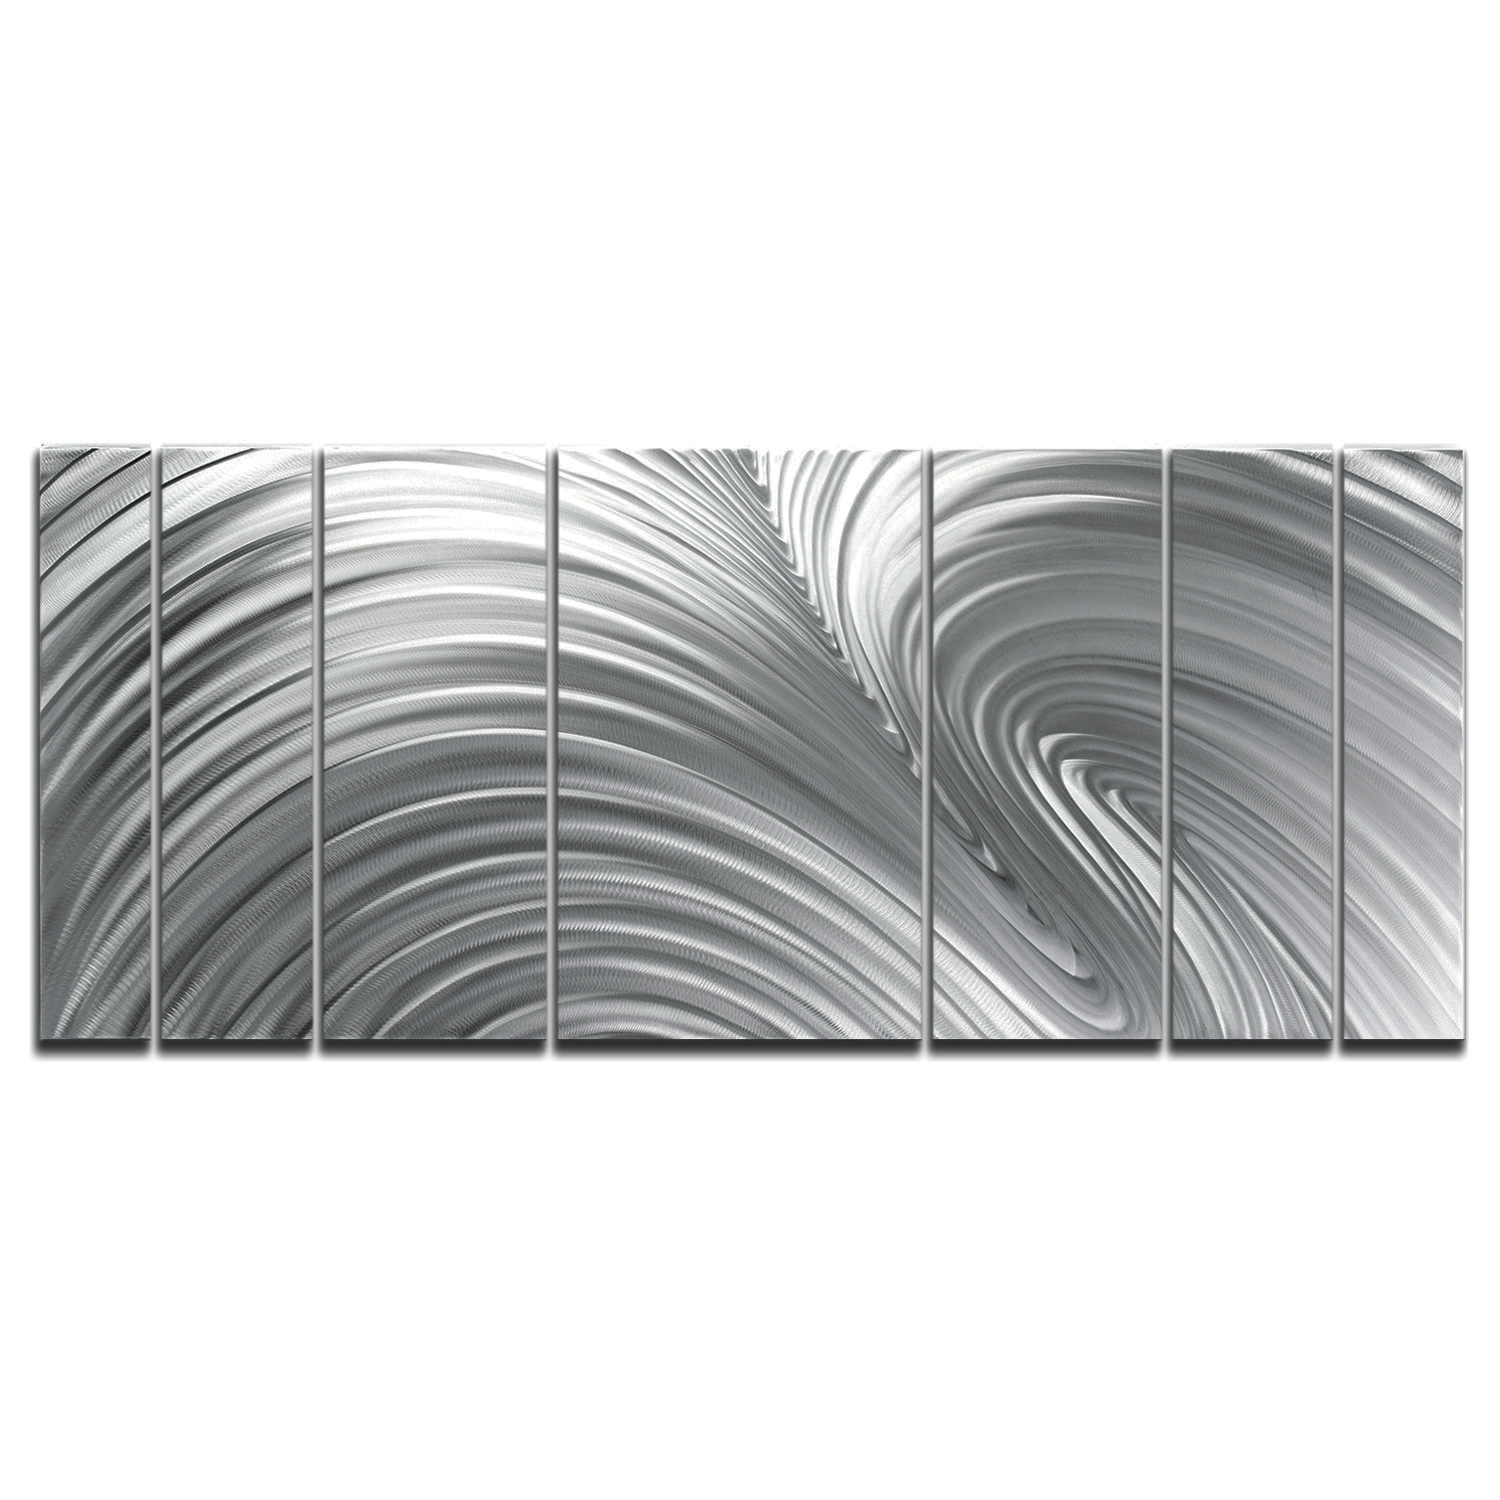 Fusion Large 120x48 in. (57% off)